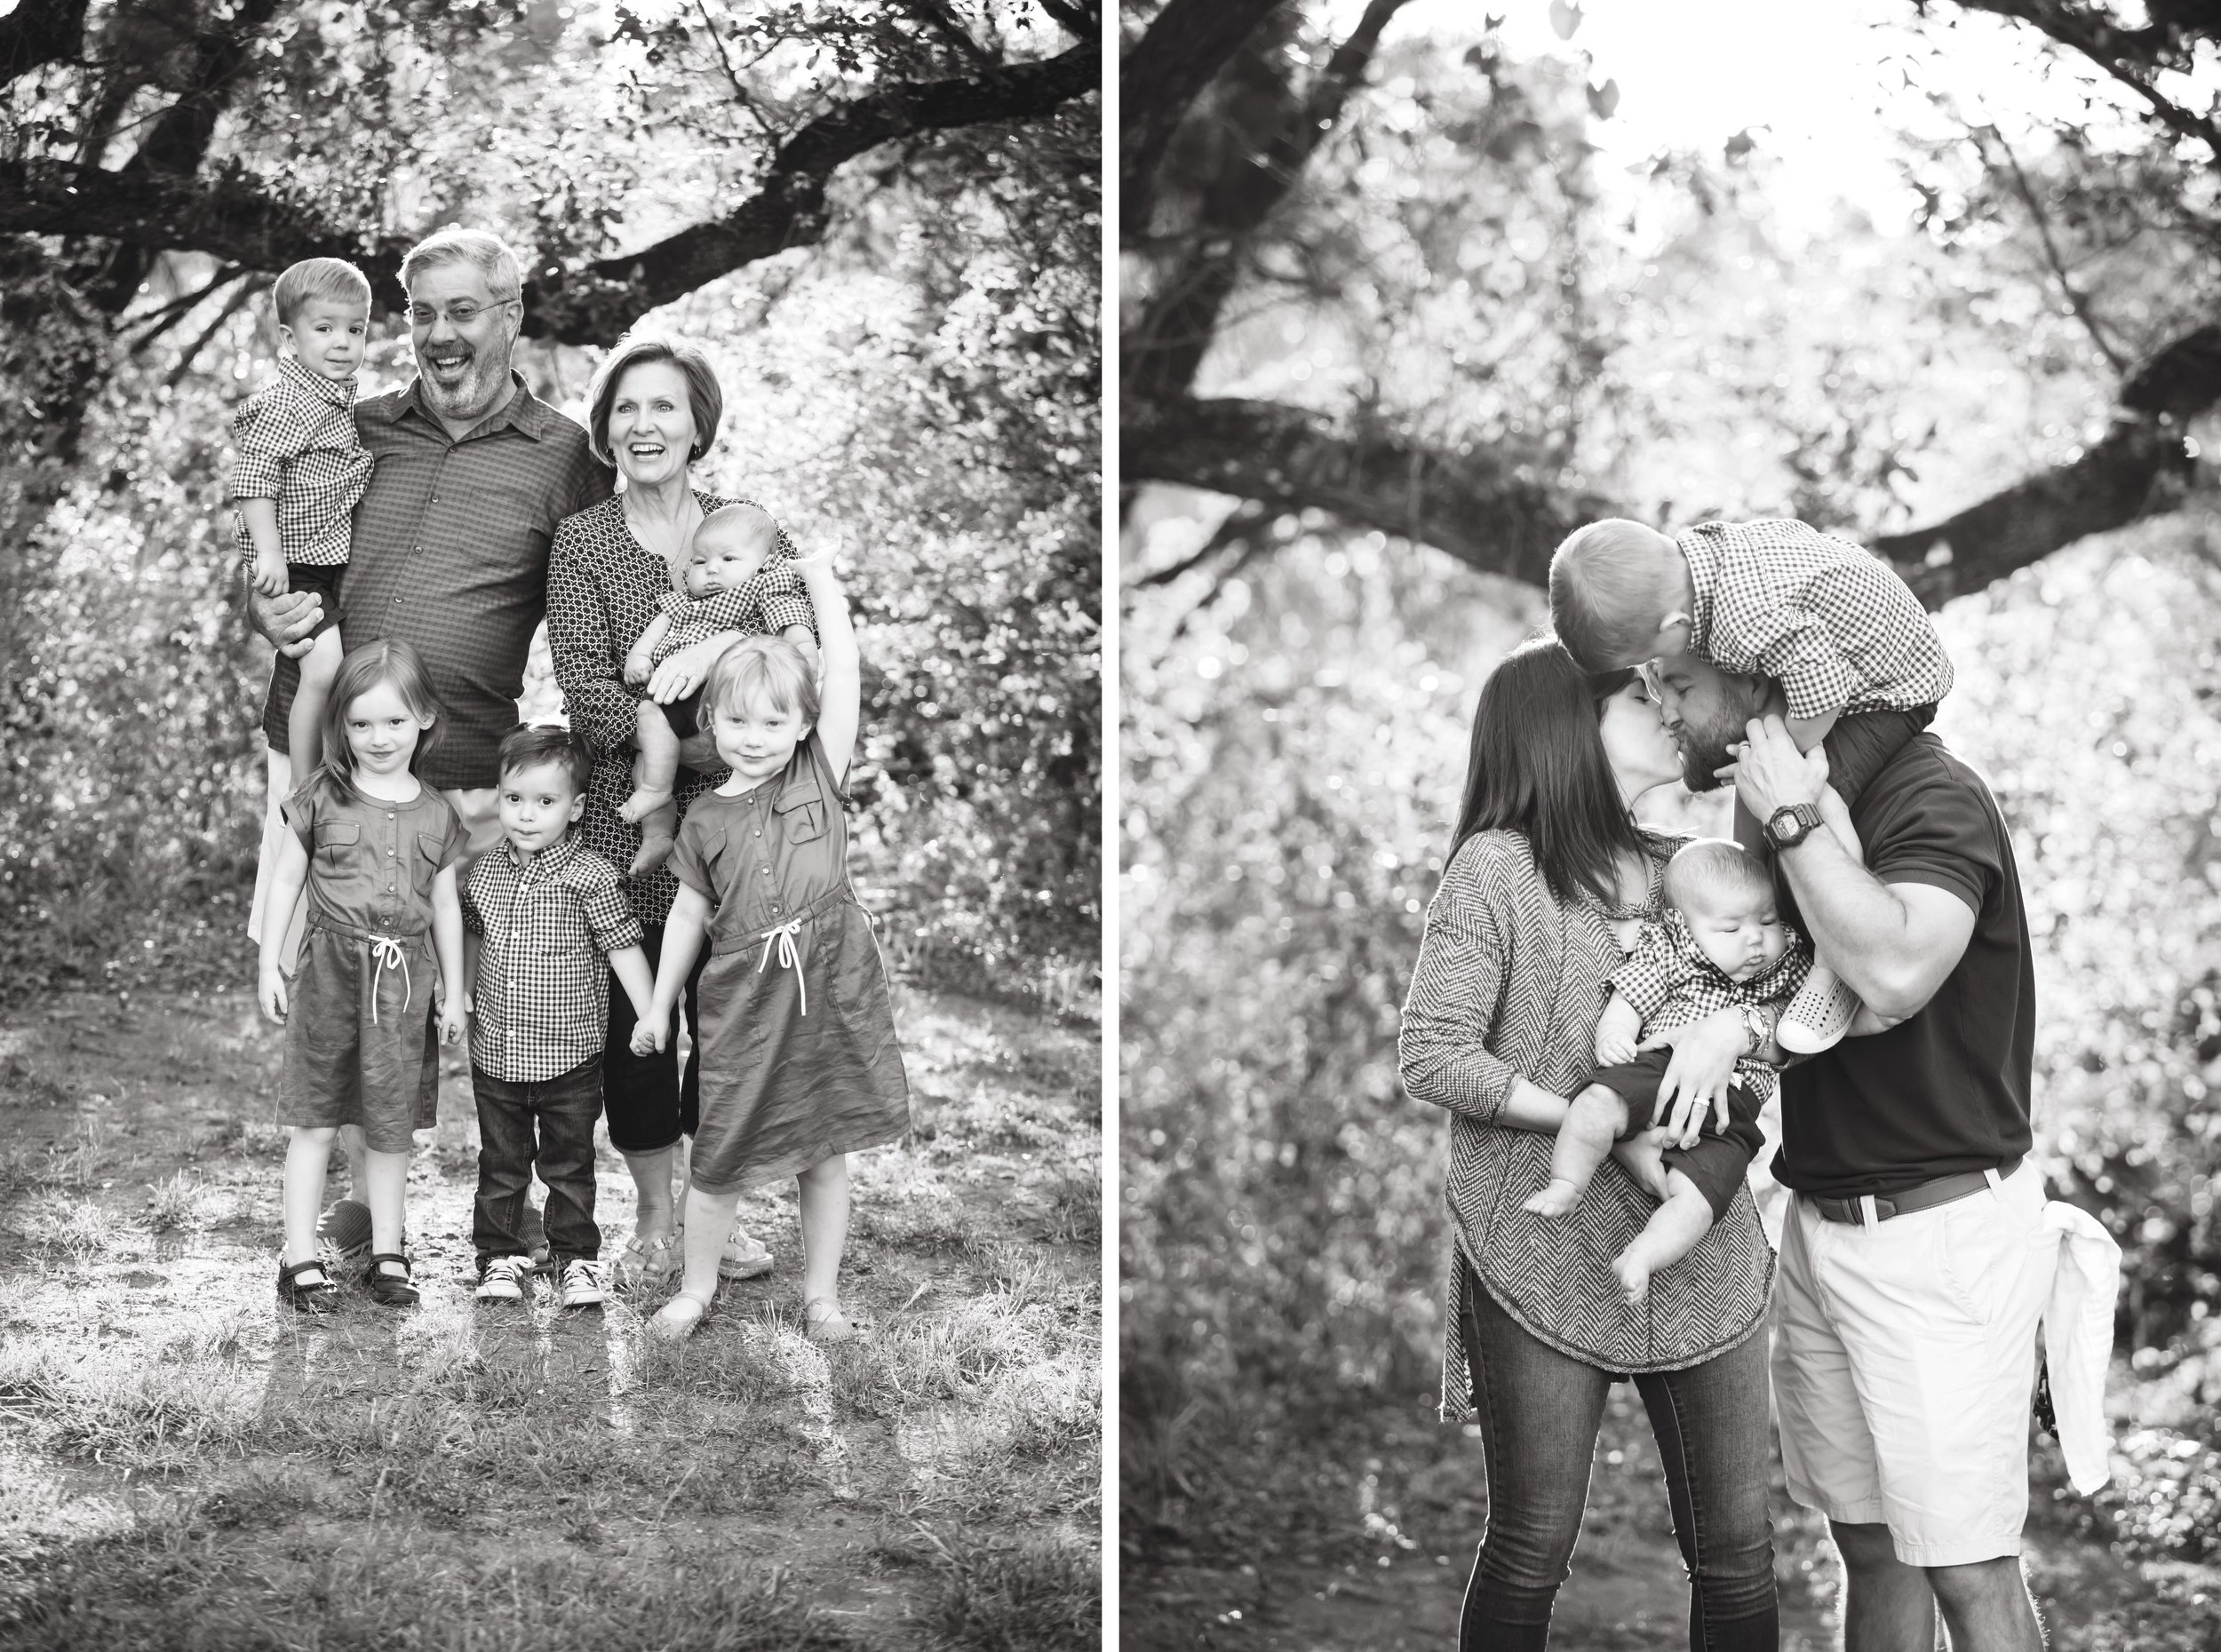 Marble_Falls_Stobaugh_Family_Photographer_Jenna_Petty_05.jpg